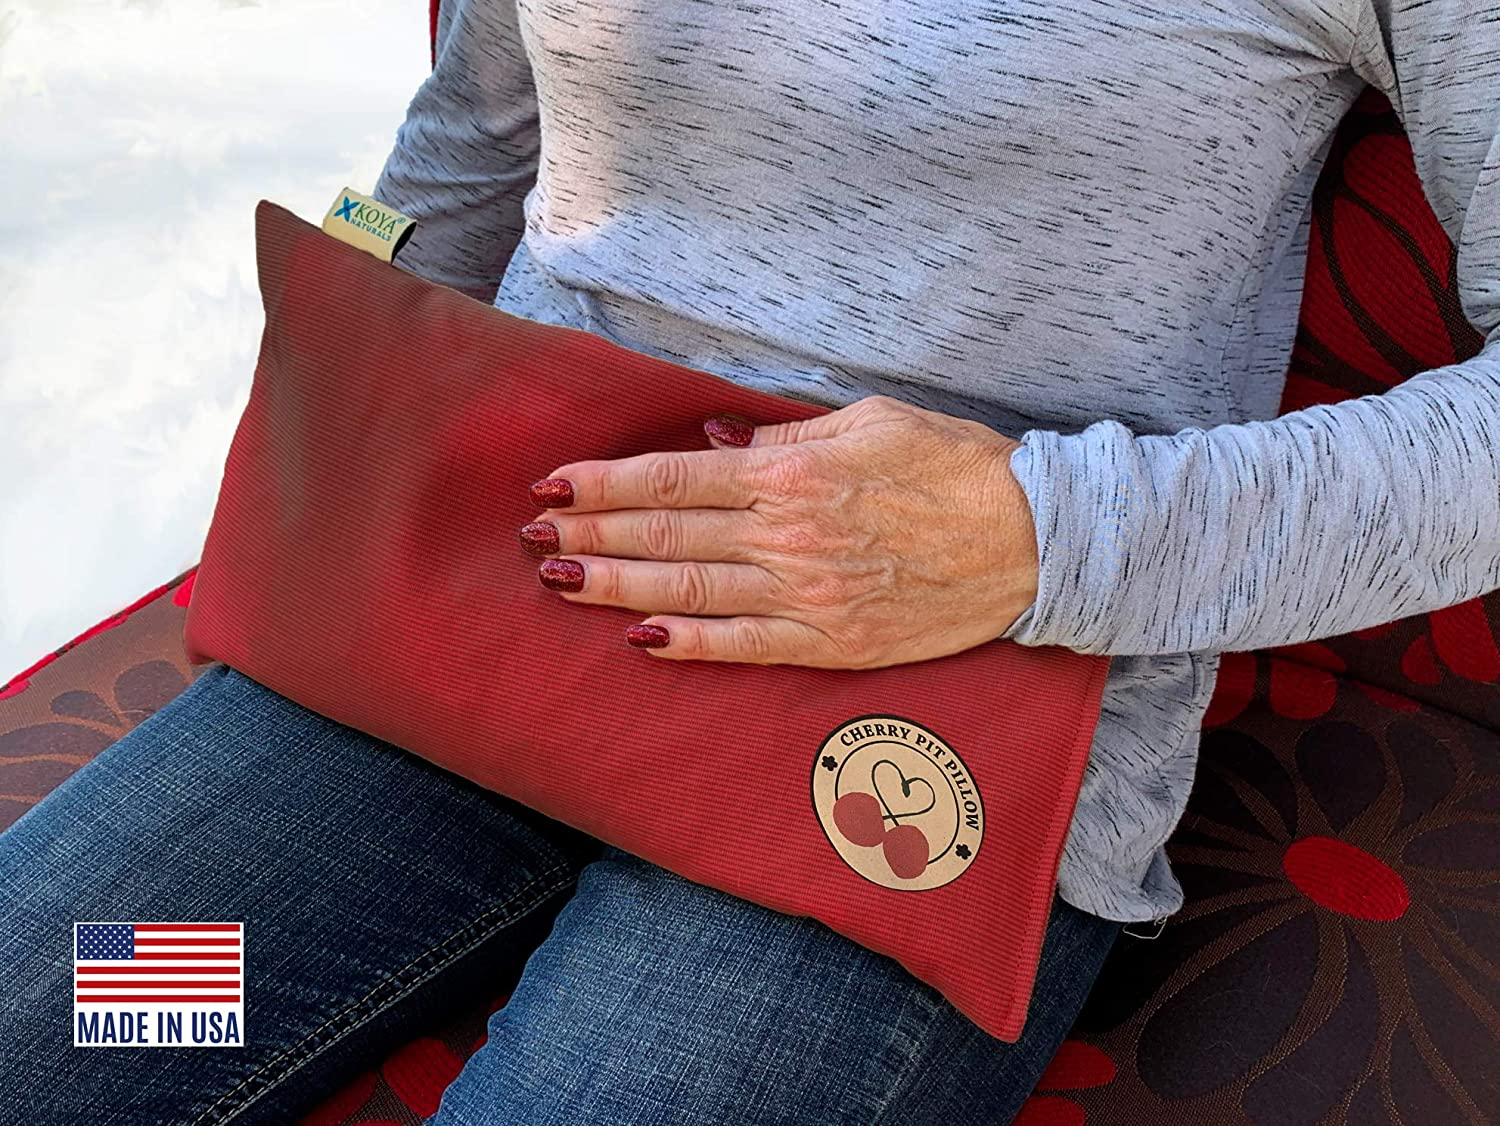 KOYA Naturals Heating Pad Microwavable - Cherry Pit/Stone/Seed Pillow Heat Pack for Neck, Muscles, Joints, Stomach Pain, Menstrual Cramps - Warm Compress Neck Wrap - Moist Heat Therapy (Henna Red)